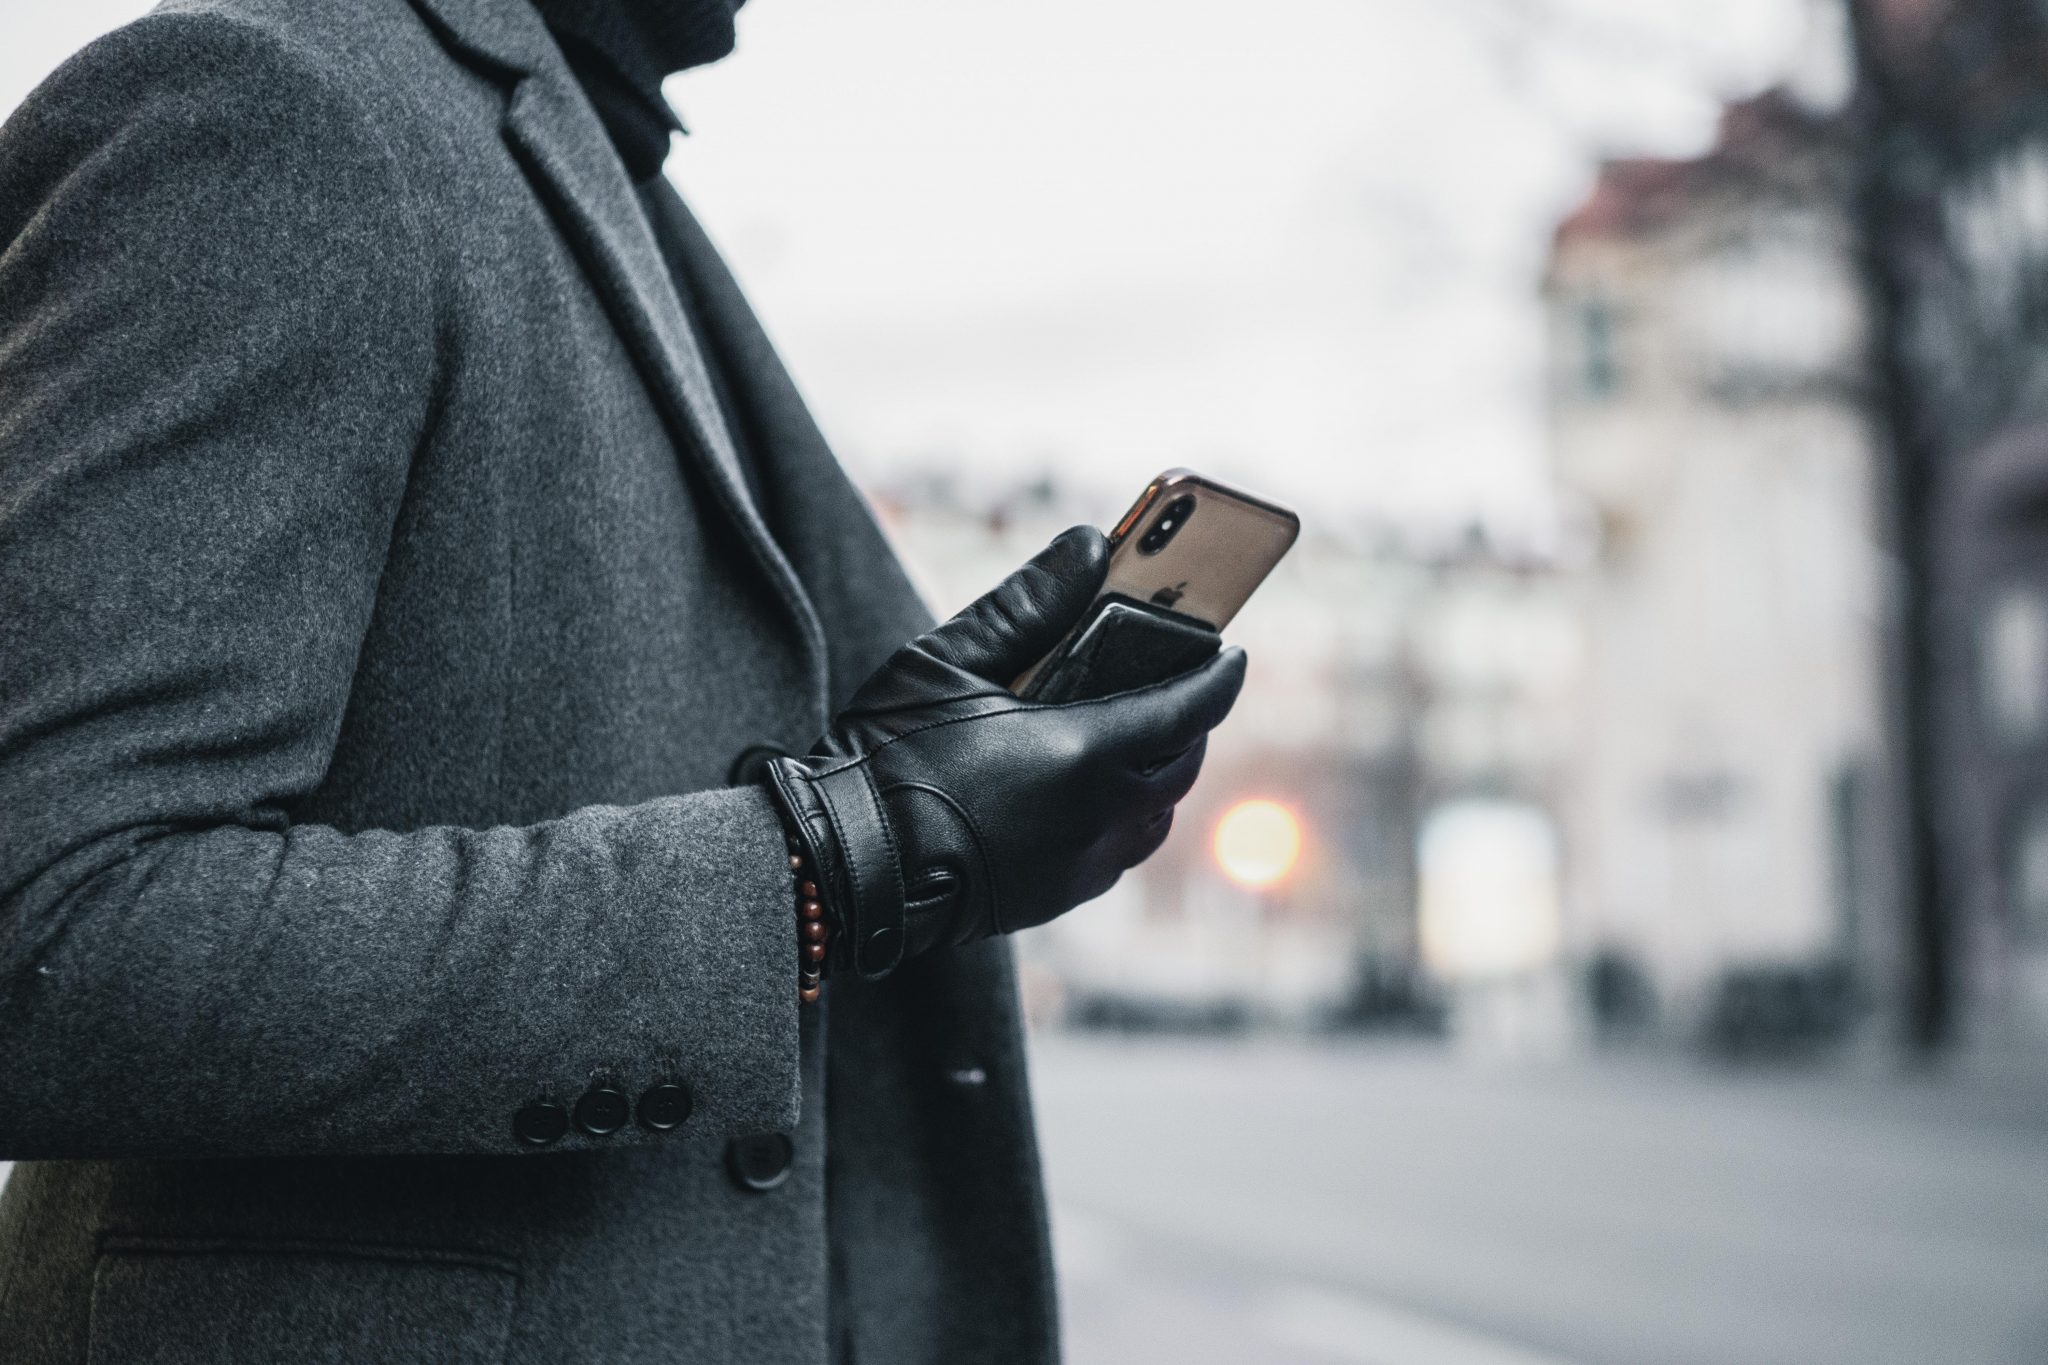 Mujjo Leather Touchscreen Gloves – 1 Year Later Review